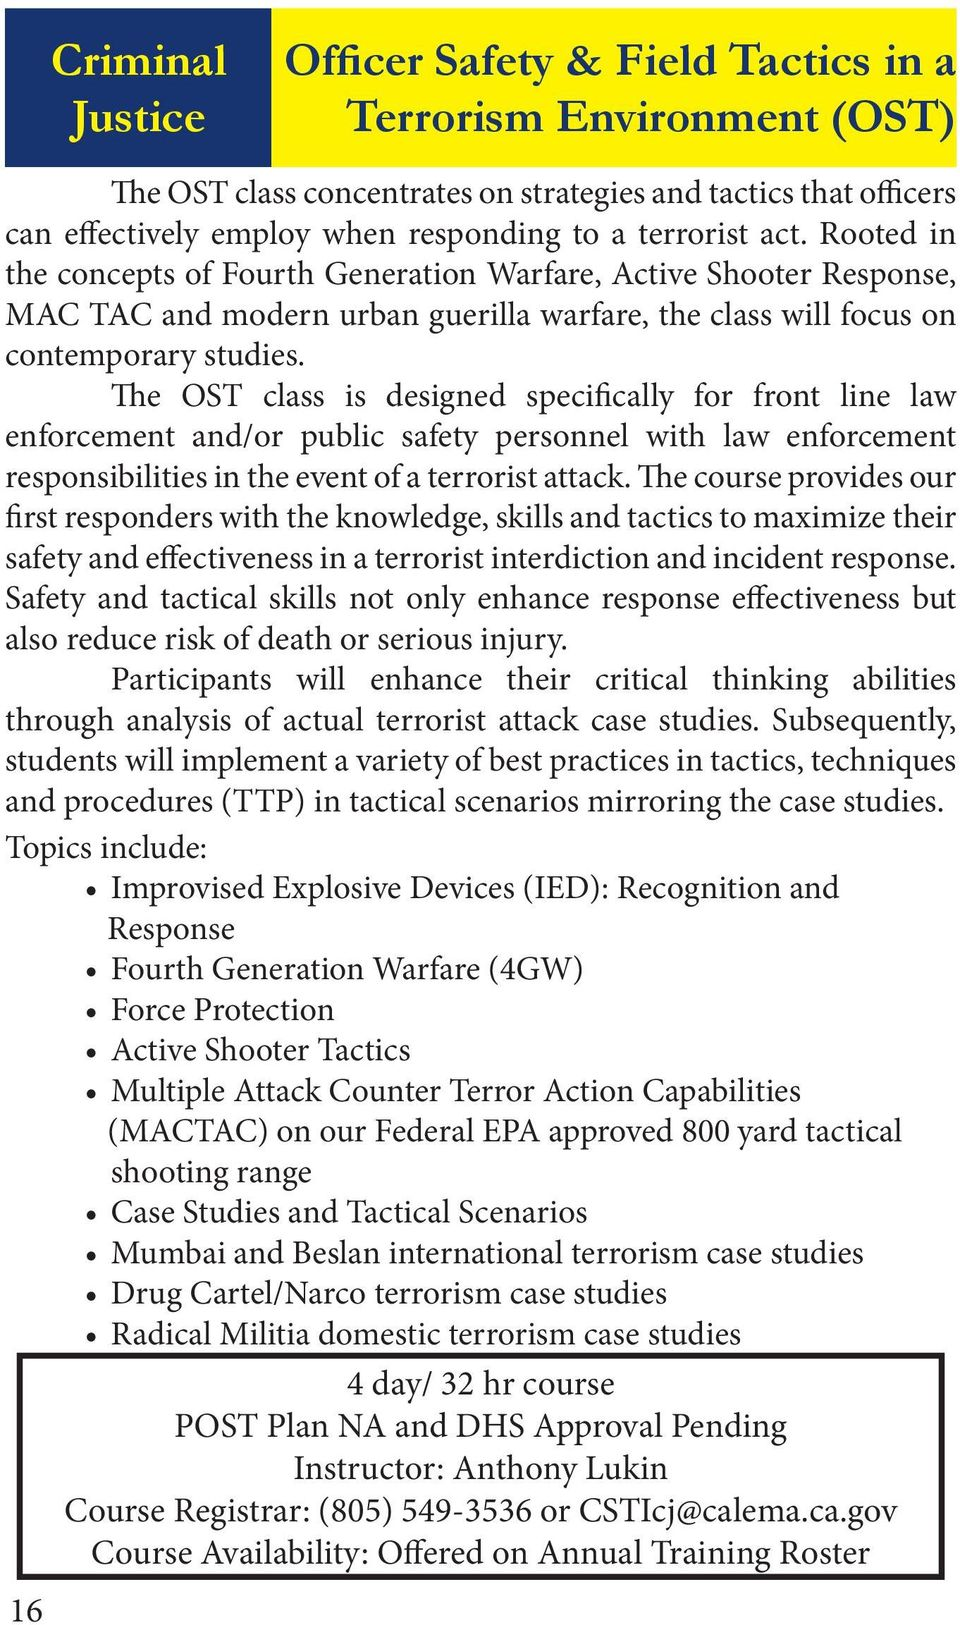 The OST class is designed specifically for front line law enforcement and/or public safety personnel with law enforcement responsibilities in the event of a terrorist attack.